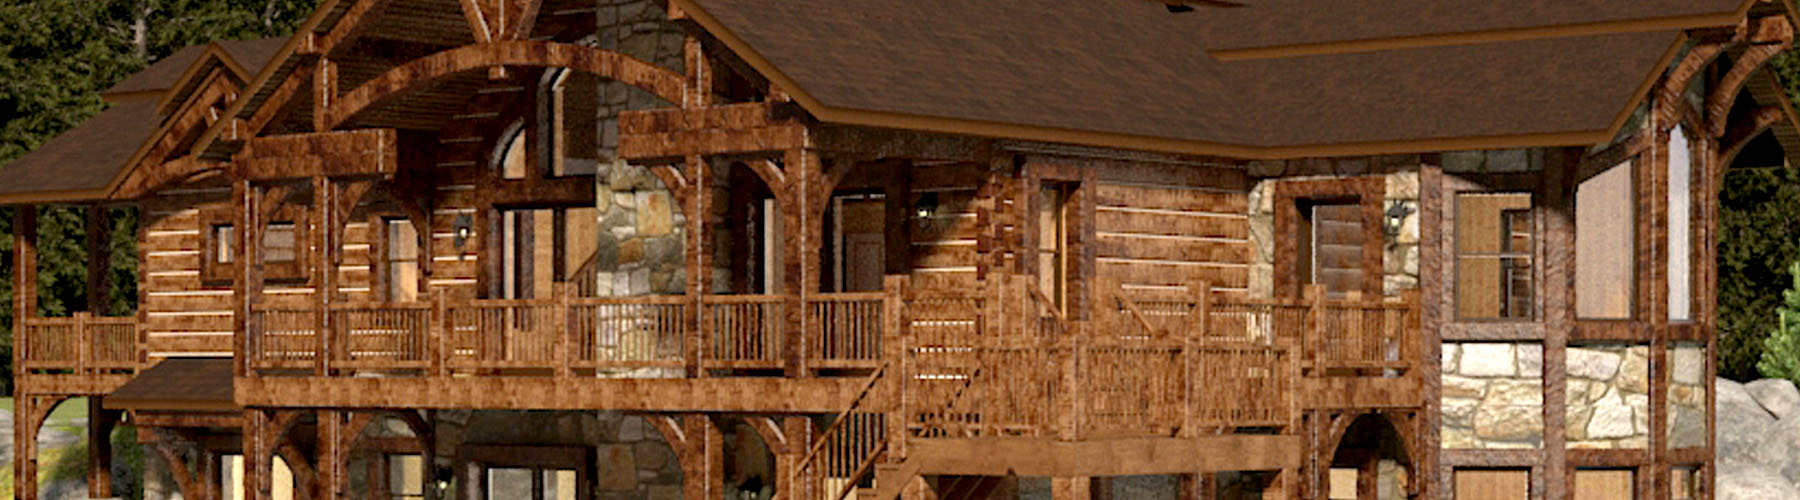 Dream Home 2532AR-UCT Ranch Ultra Custom Timber